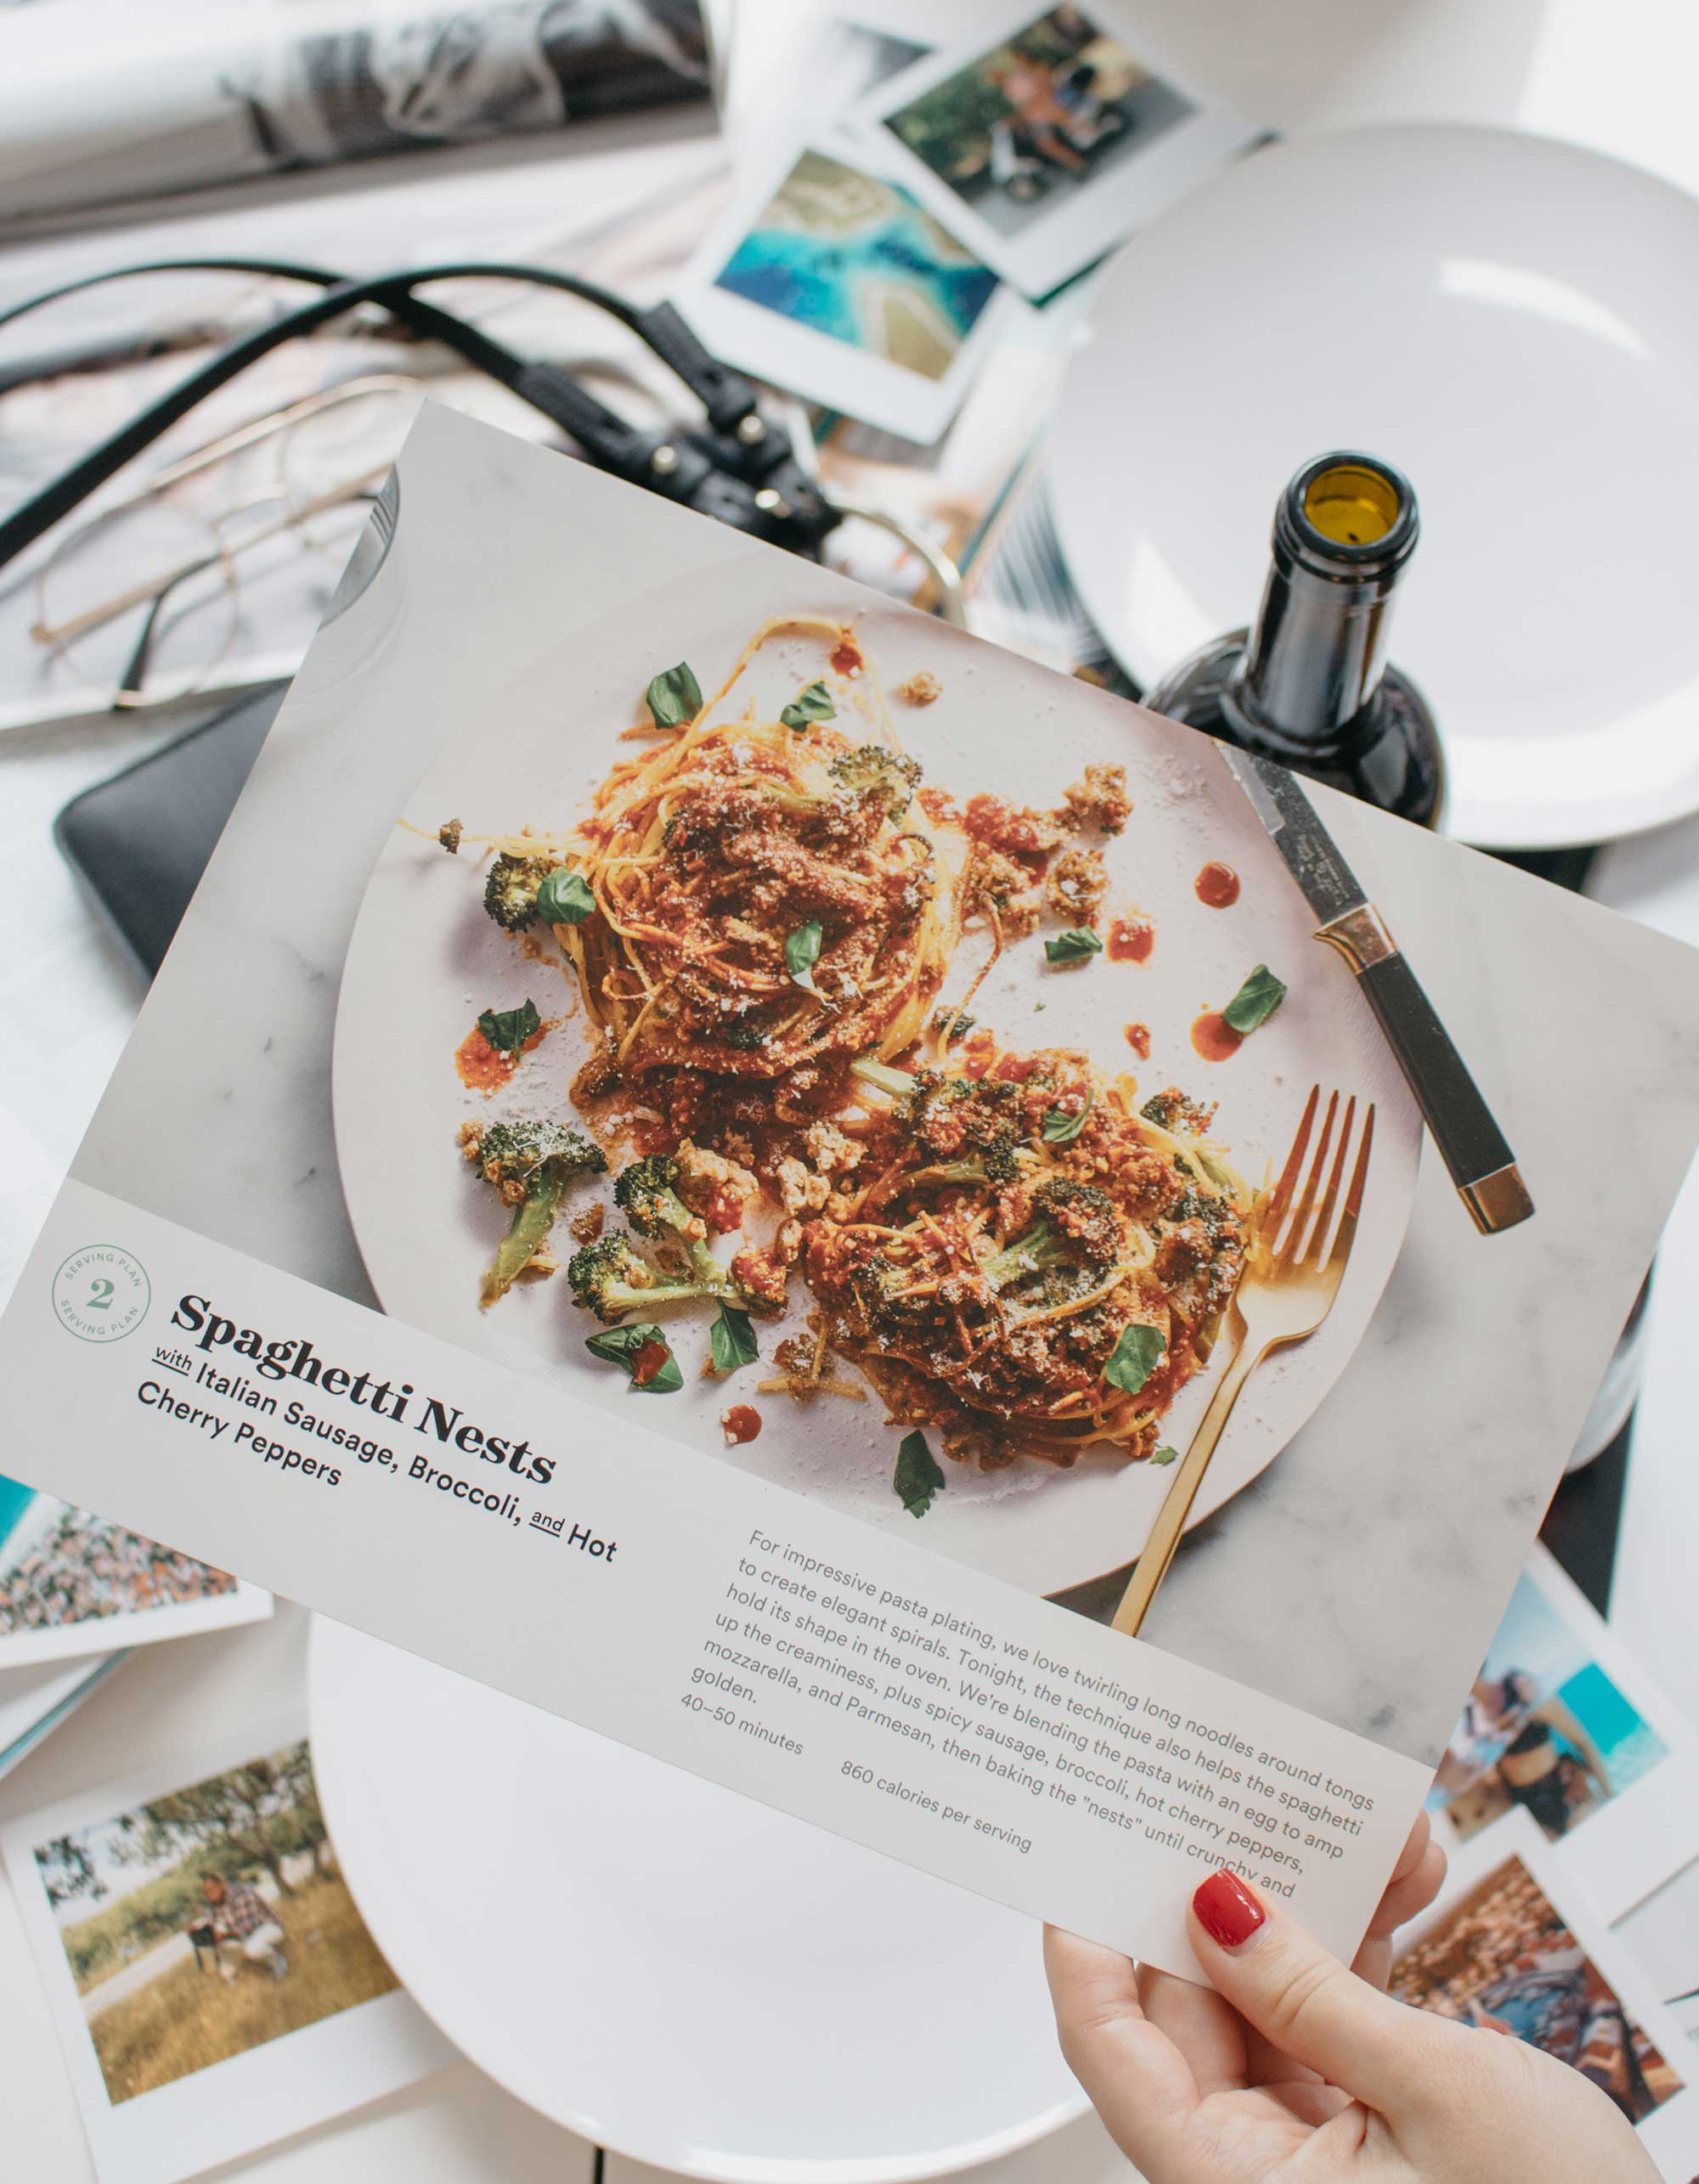 how-to-make-spagetti-nests-with-italian-sausage-broccoli-and-hot-cherry-peppers-flatlay-dinner-1.jpg